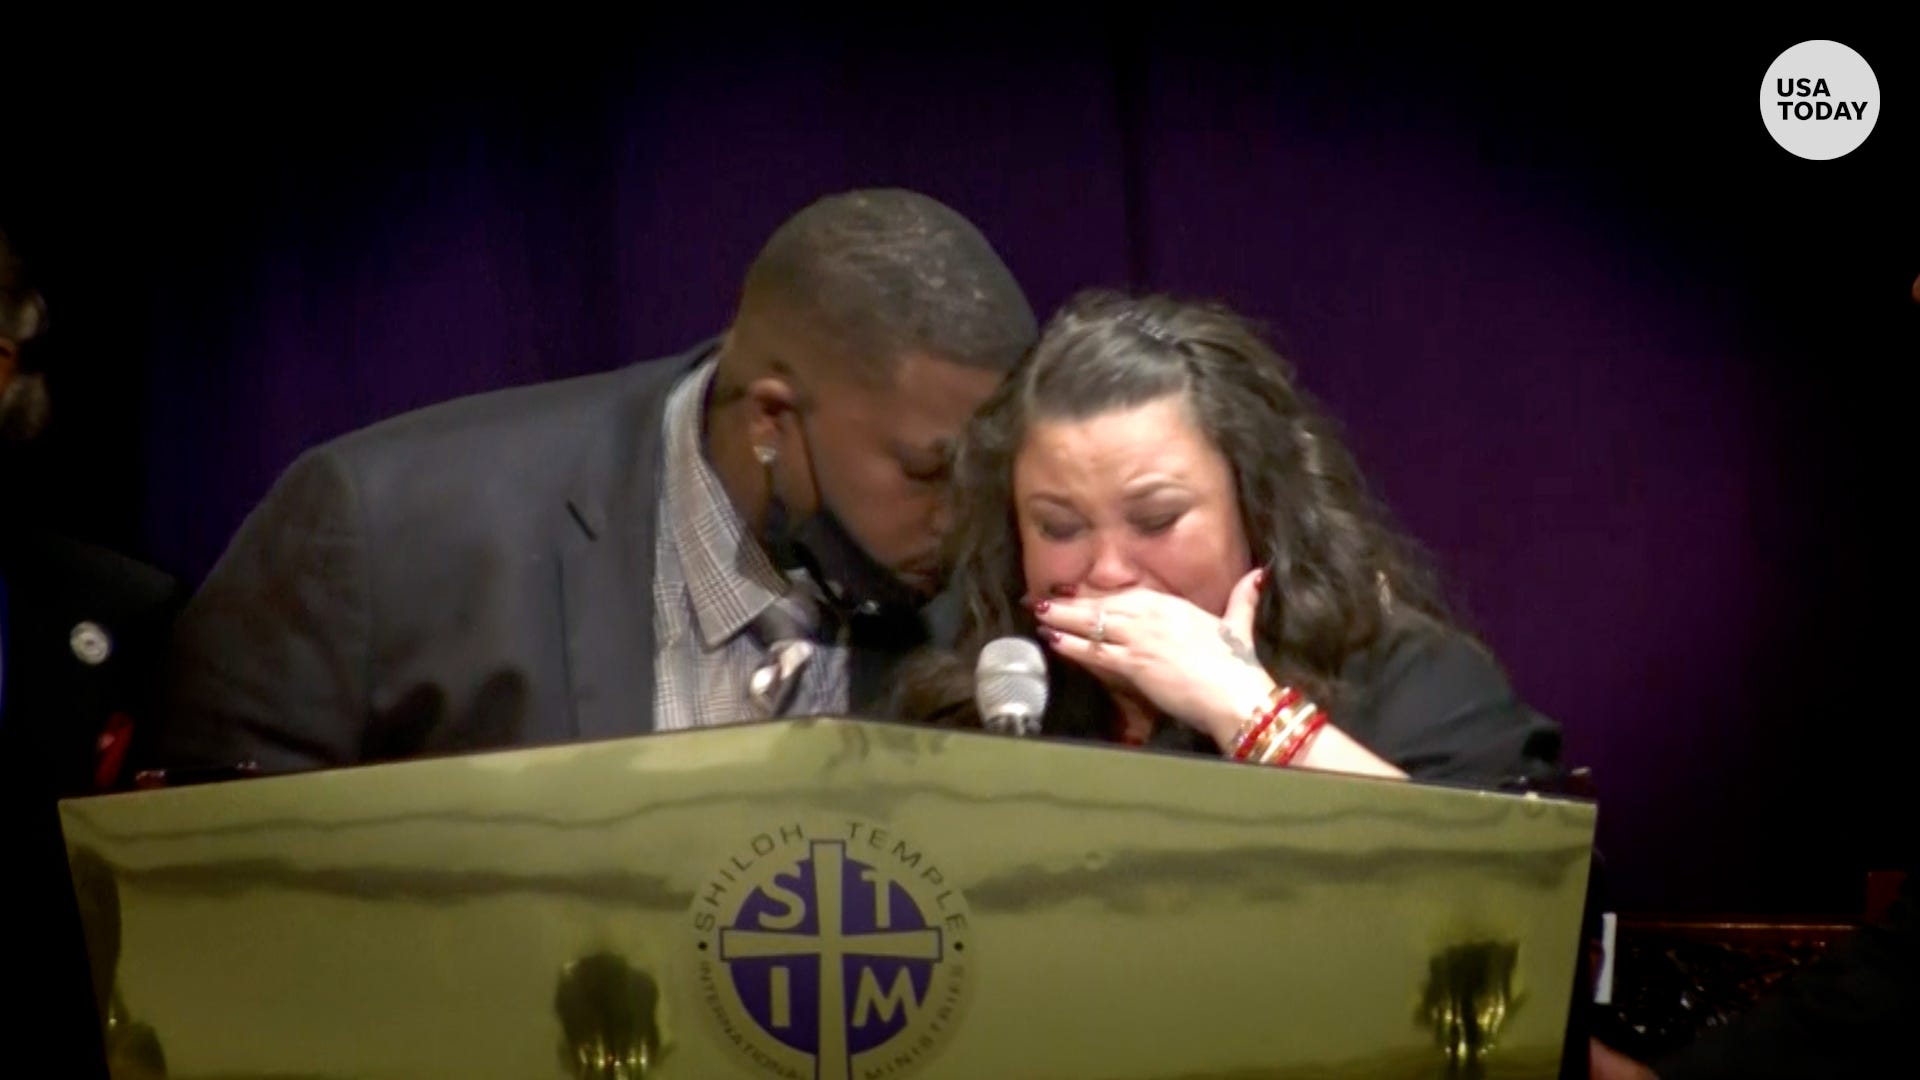 'Words can't explain how I feel': Daunte Wright's parents share grief at son's funeral